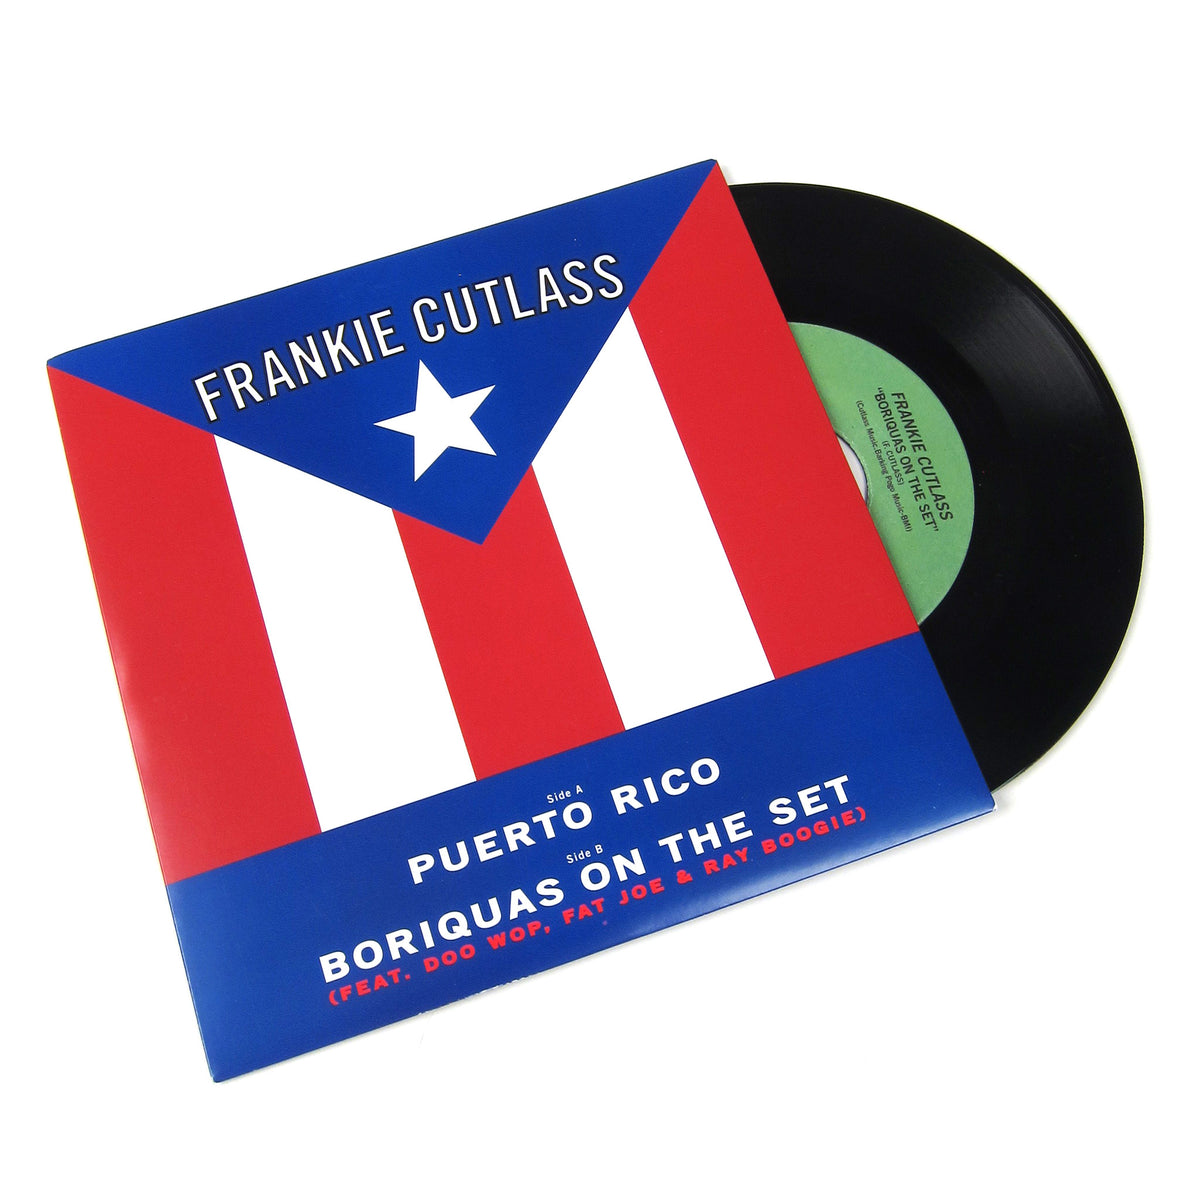 Frankie Cutlass: Puerto Rico / Boriquas On The Set Vinyl 7""